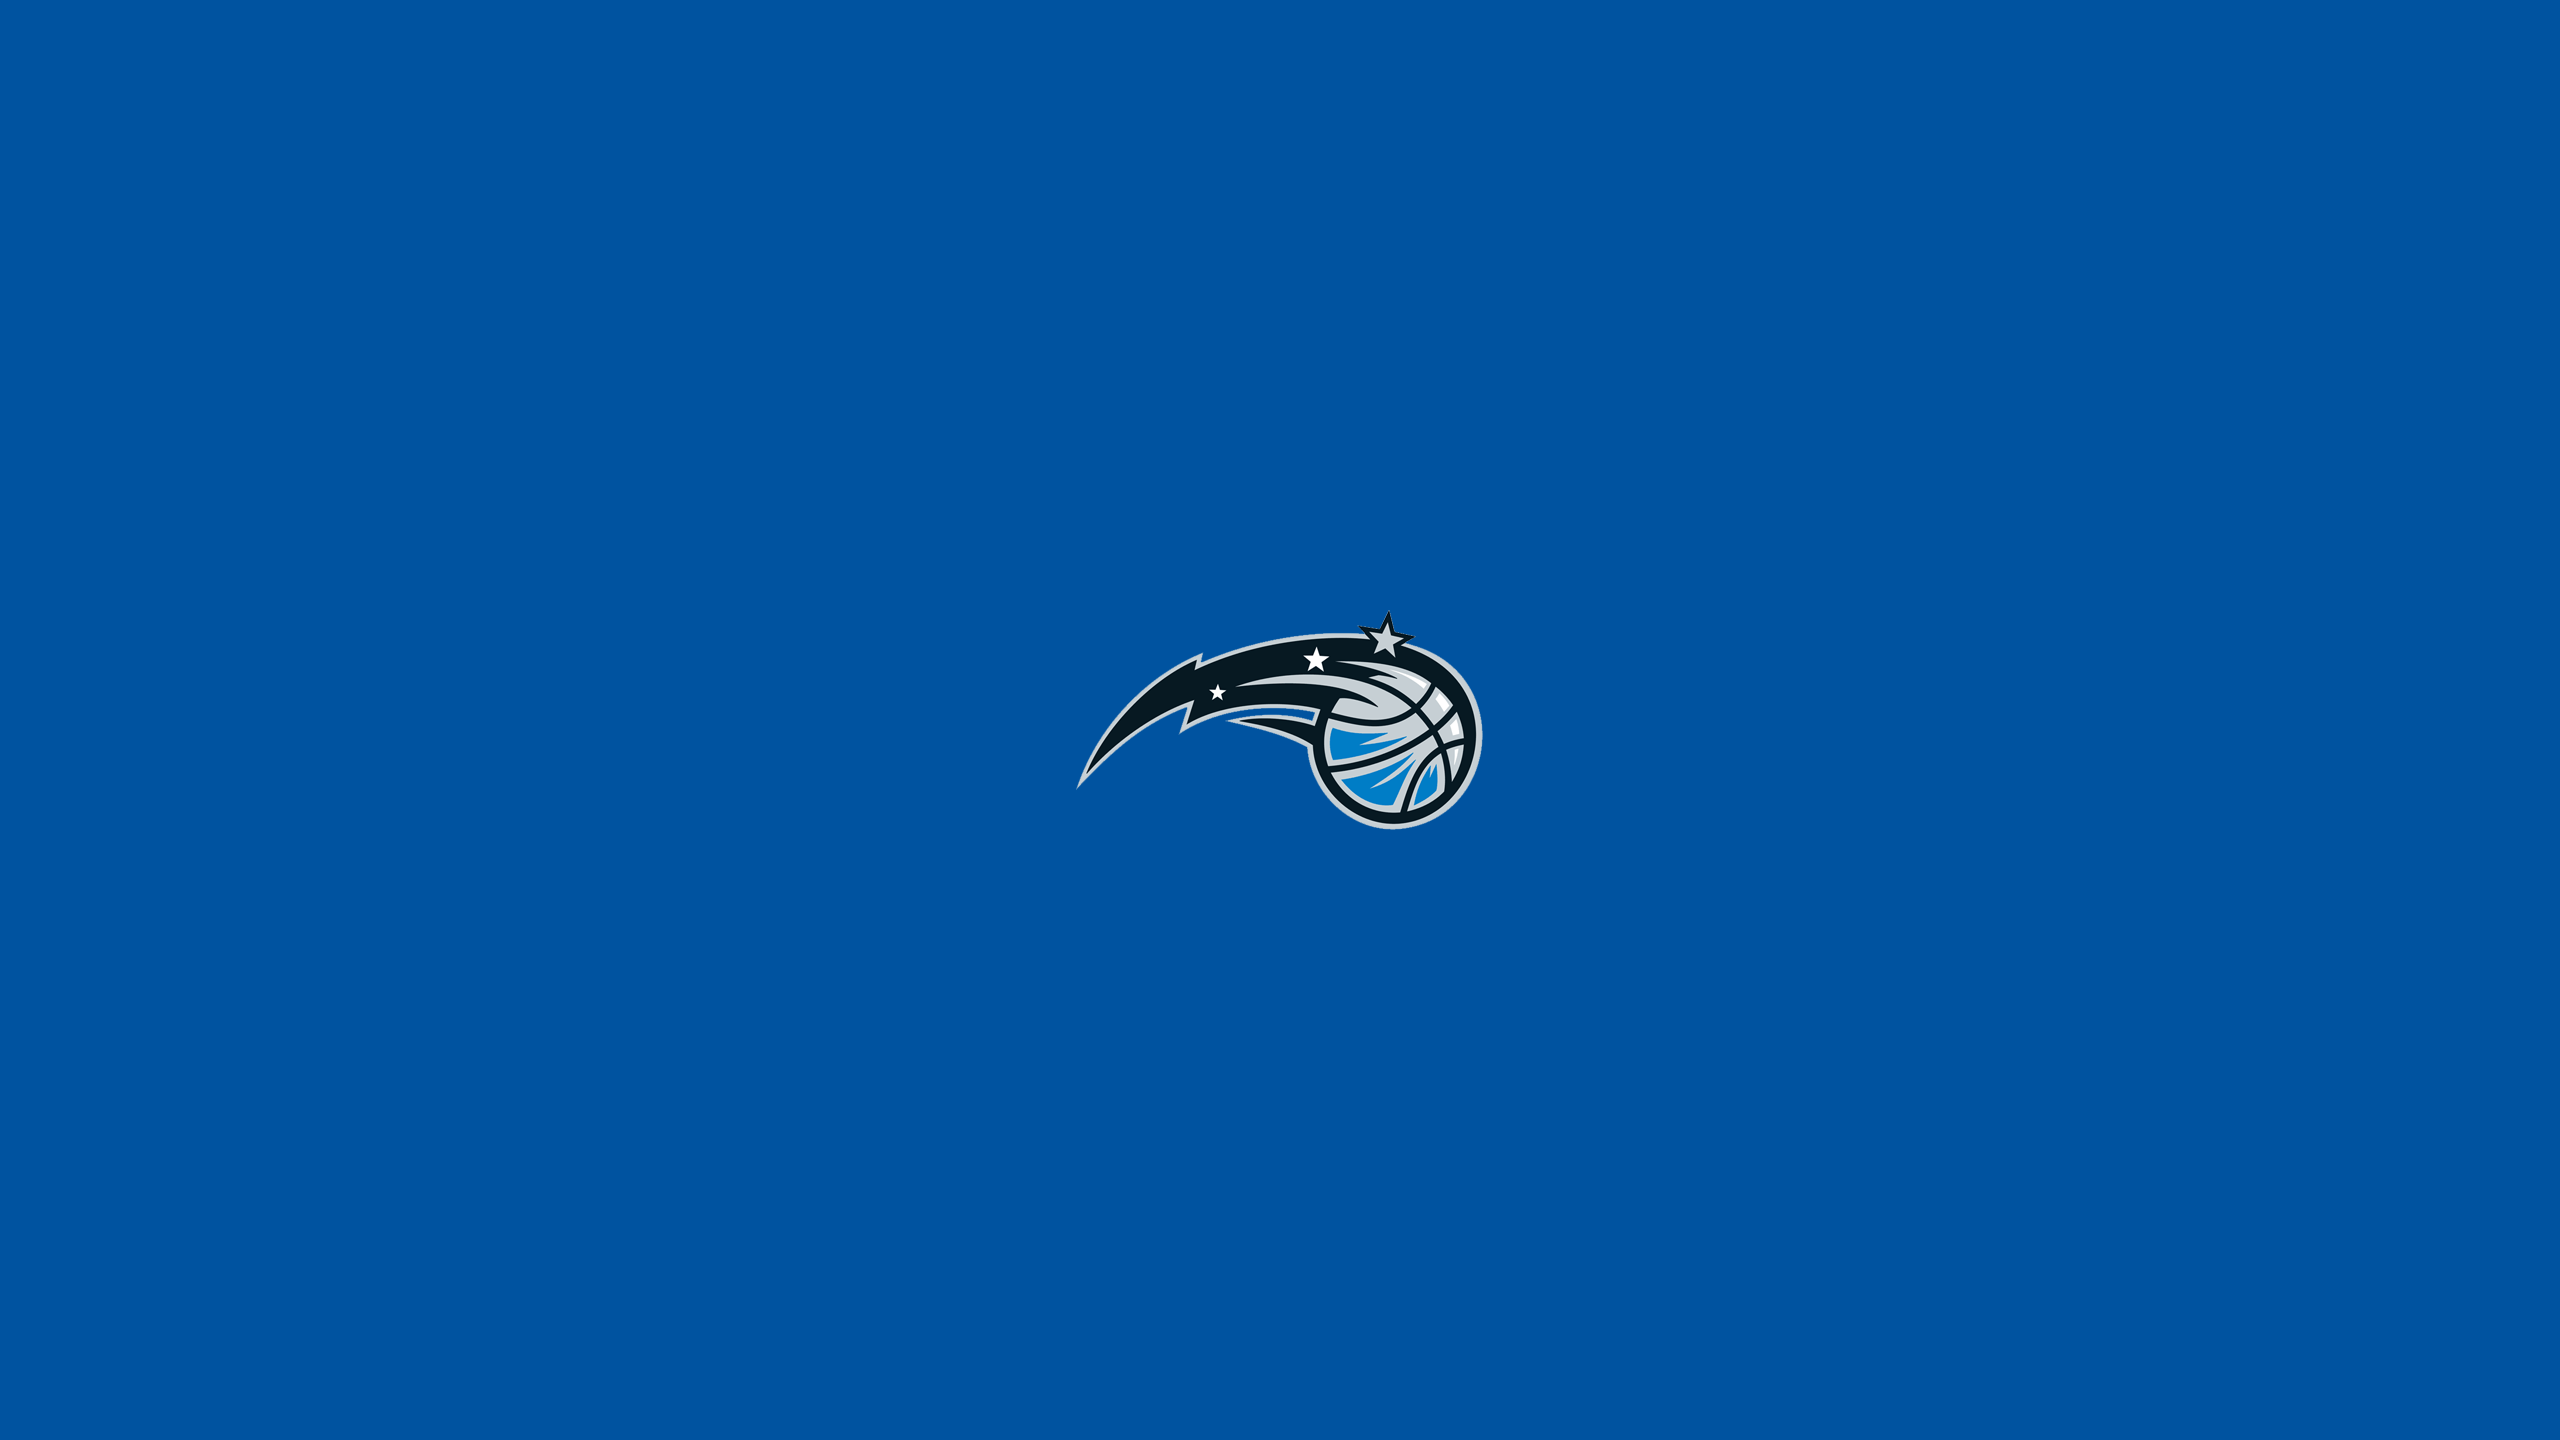 Orlando Magic (Alt)